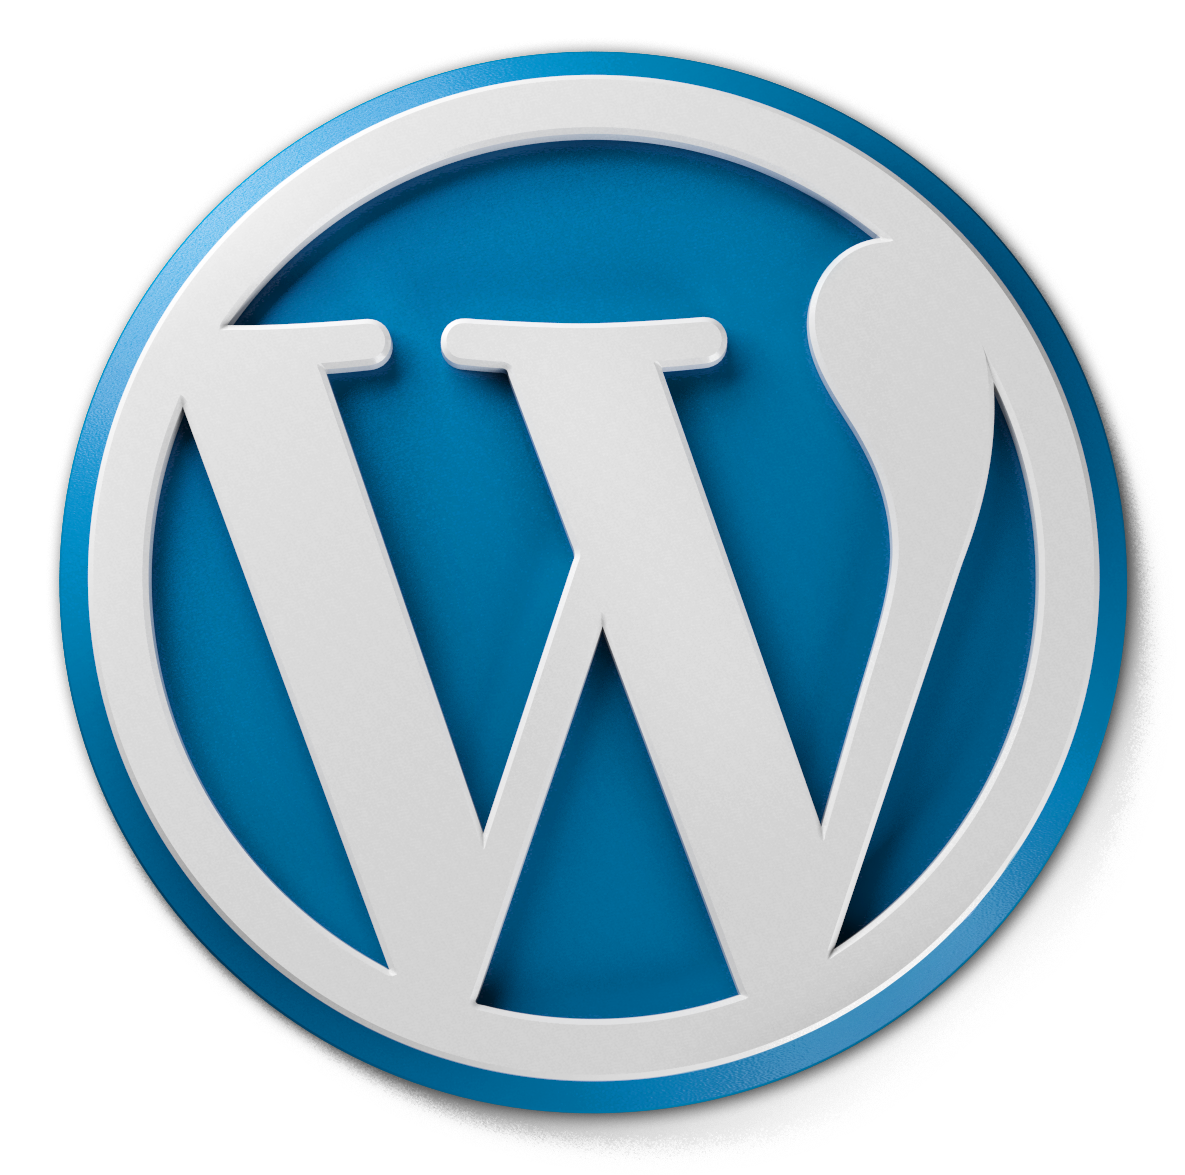 https://maessage.wordpress.com • logo de la plateforme de sites et de blogs WordPress